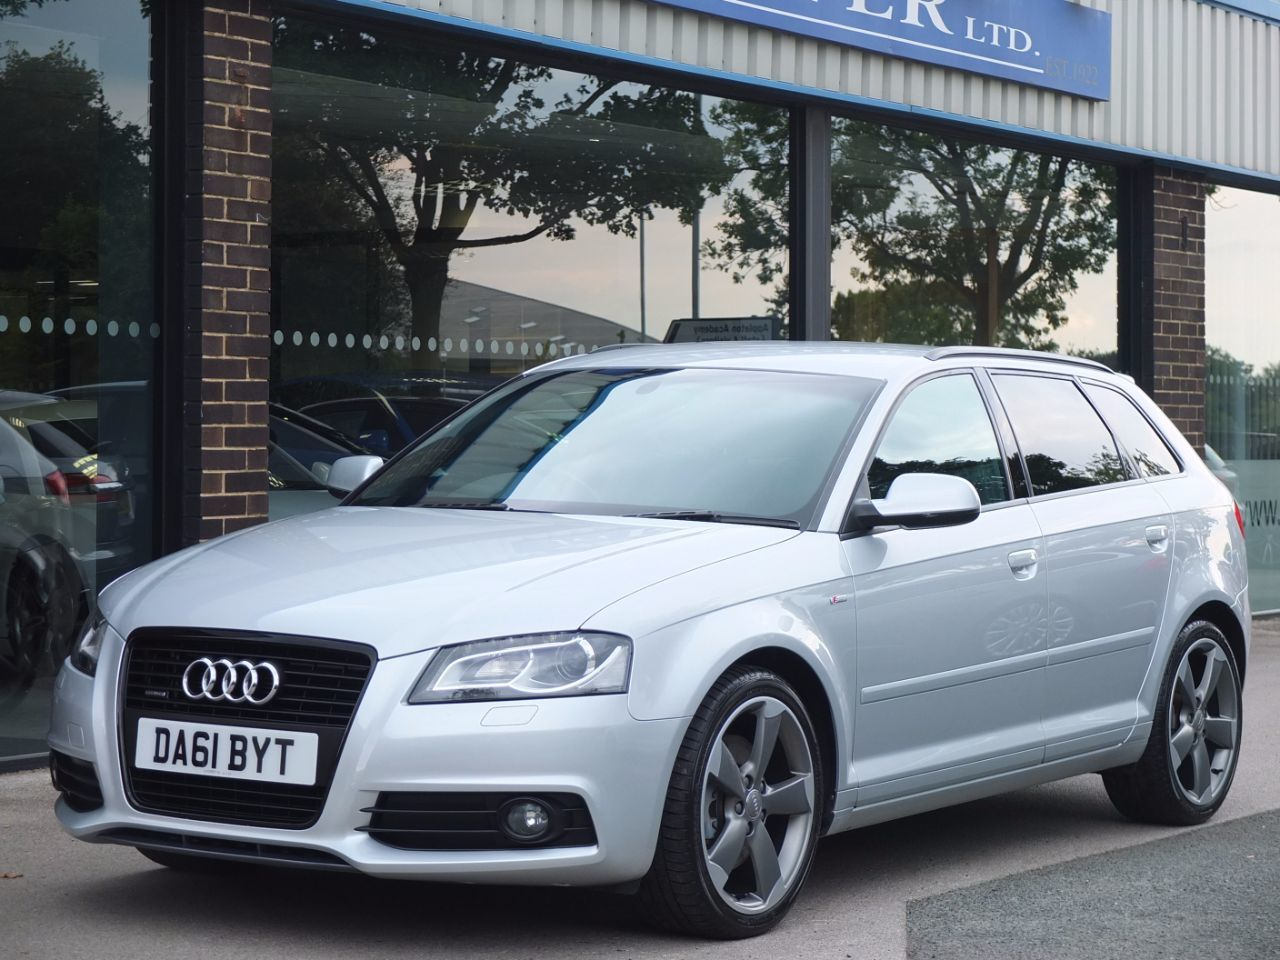 second hand audi a3 sportback 2 0 tdi 170 quattro black edition for sale in bradford west. Black Bedroom Furniture Sets. Home Design Ideas